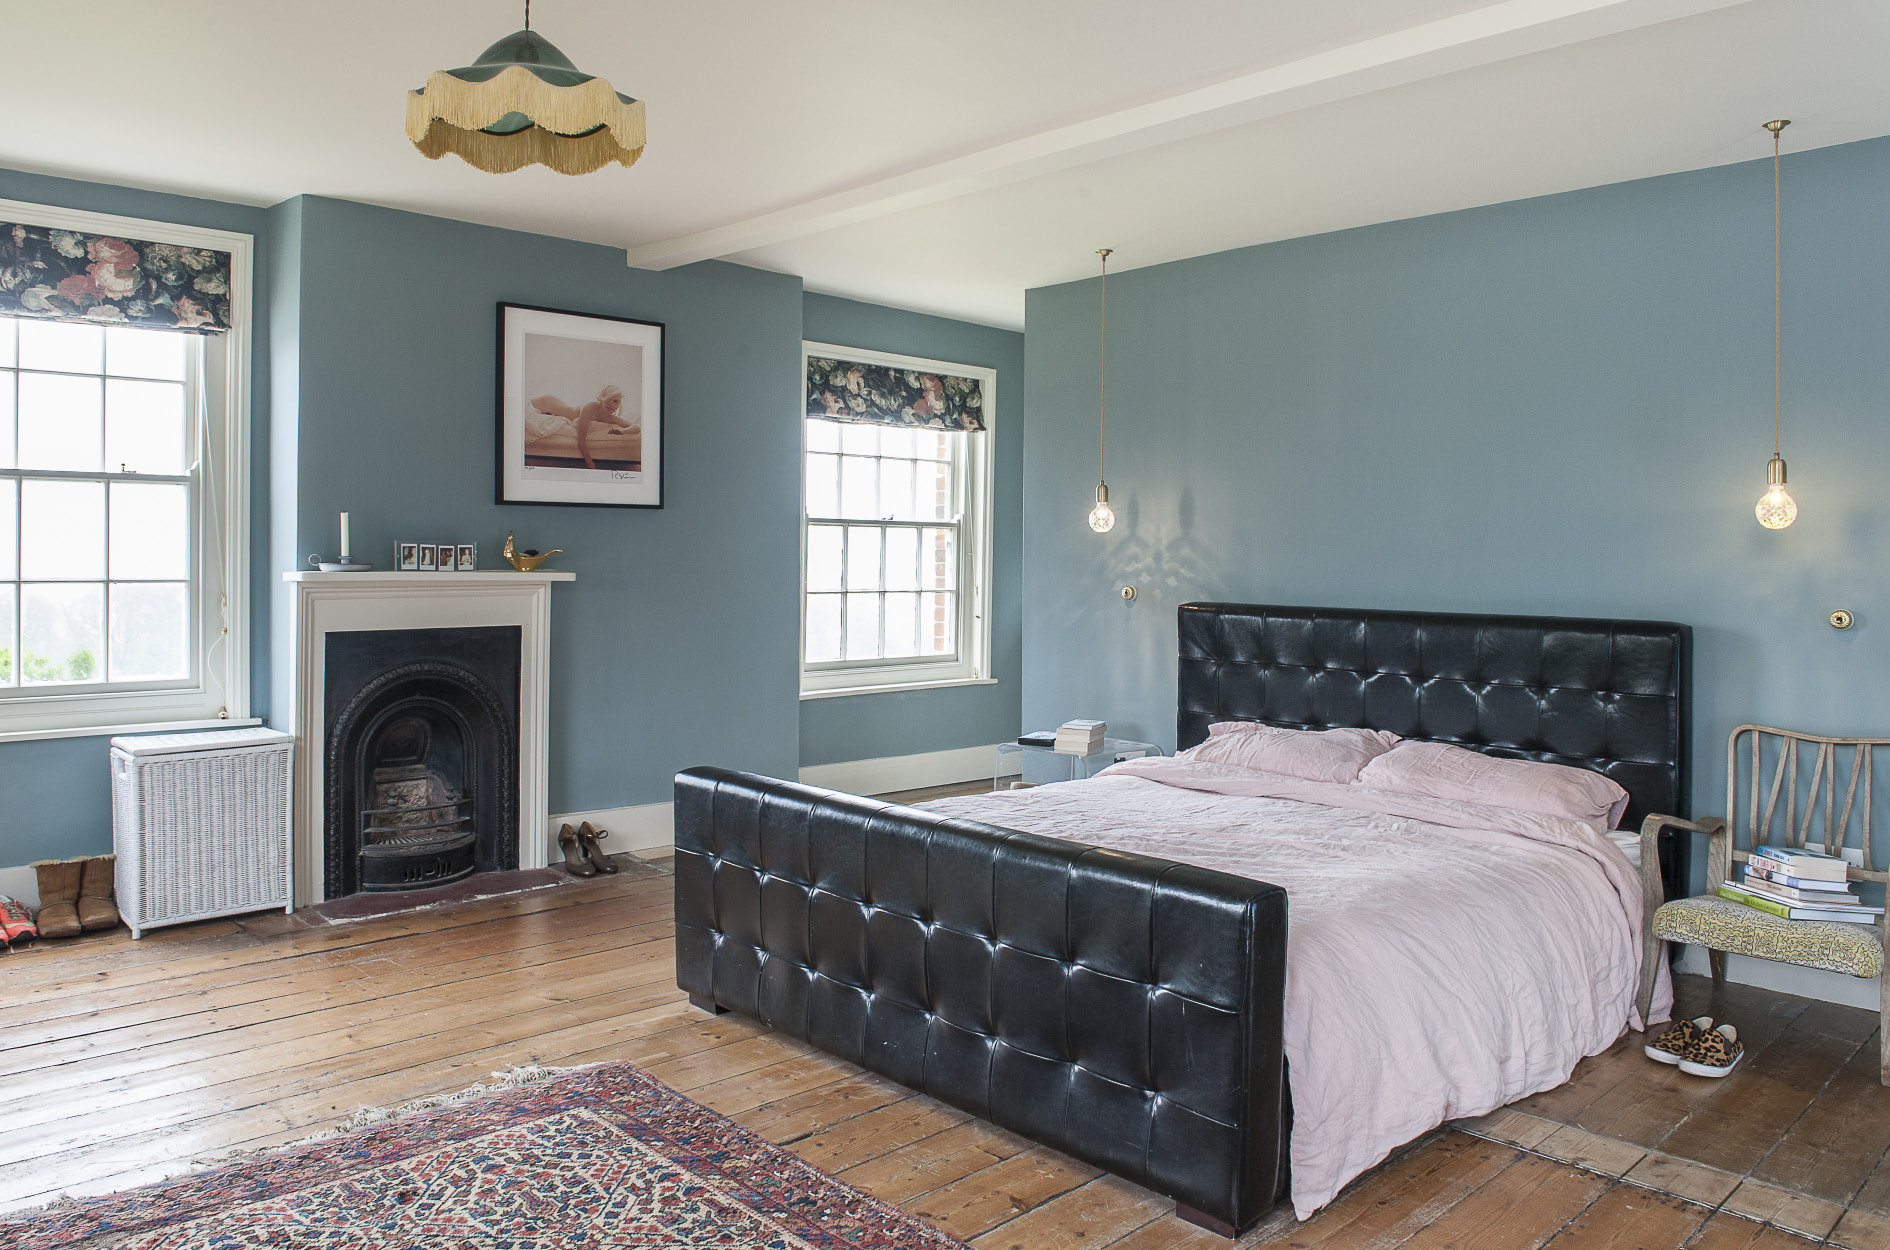 lidham hill farmhouse near rye priceless magazines. Black Bedroom Furniture Sets. Home Design Ideas